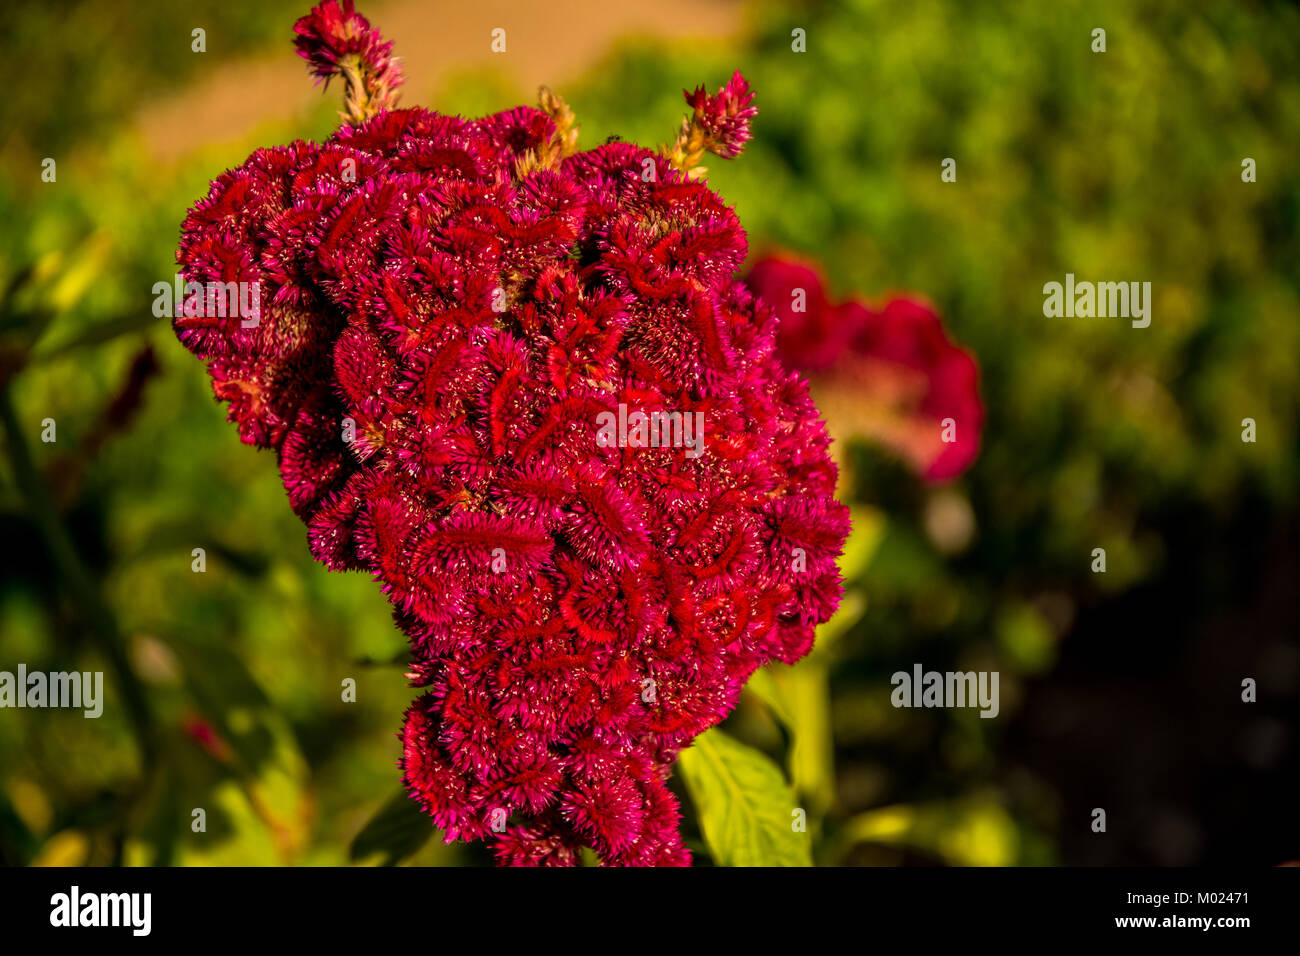 CORDOBA, ANDALUSIA / SPAIN - OCTOBER 14 2017: RED FLOWER Stock Photo